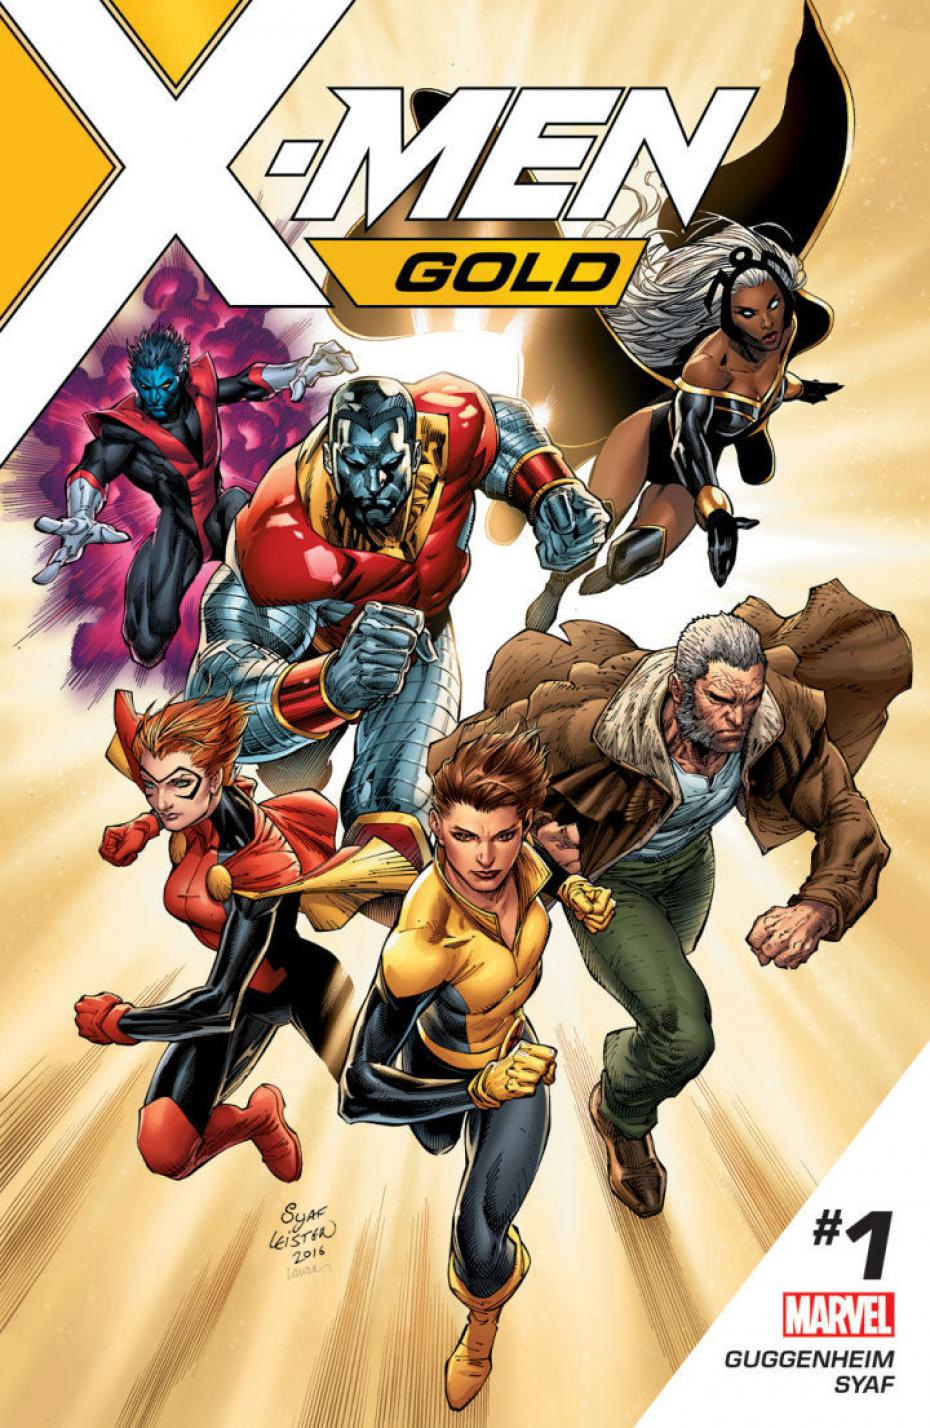 Couverture de X-Men Gold #1 par Ardian Syaf